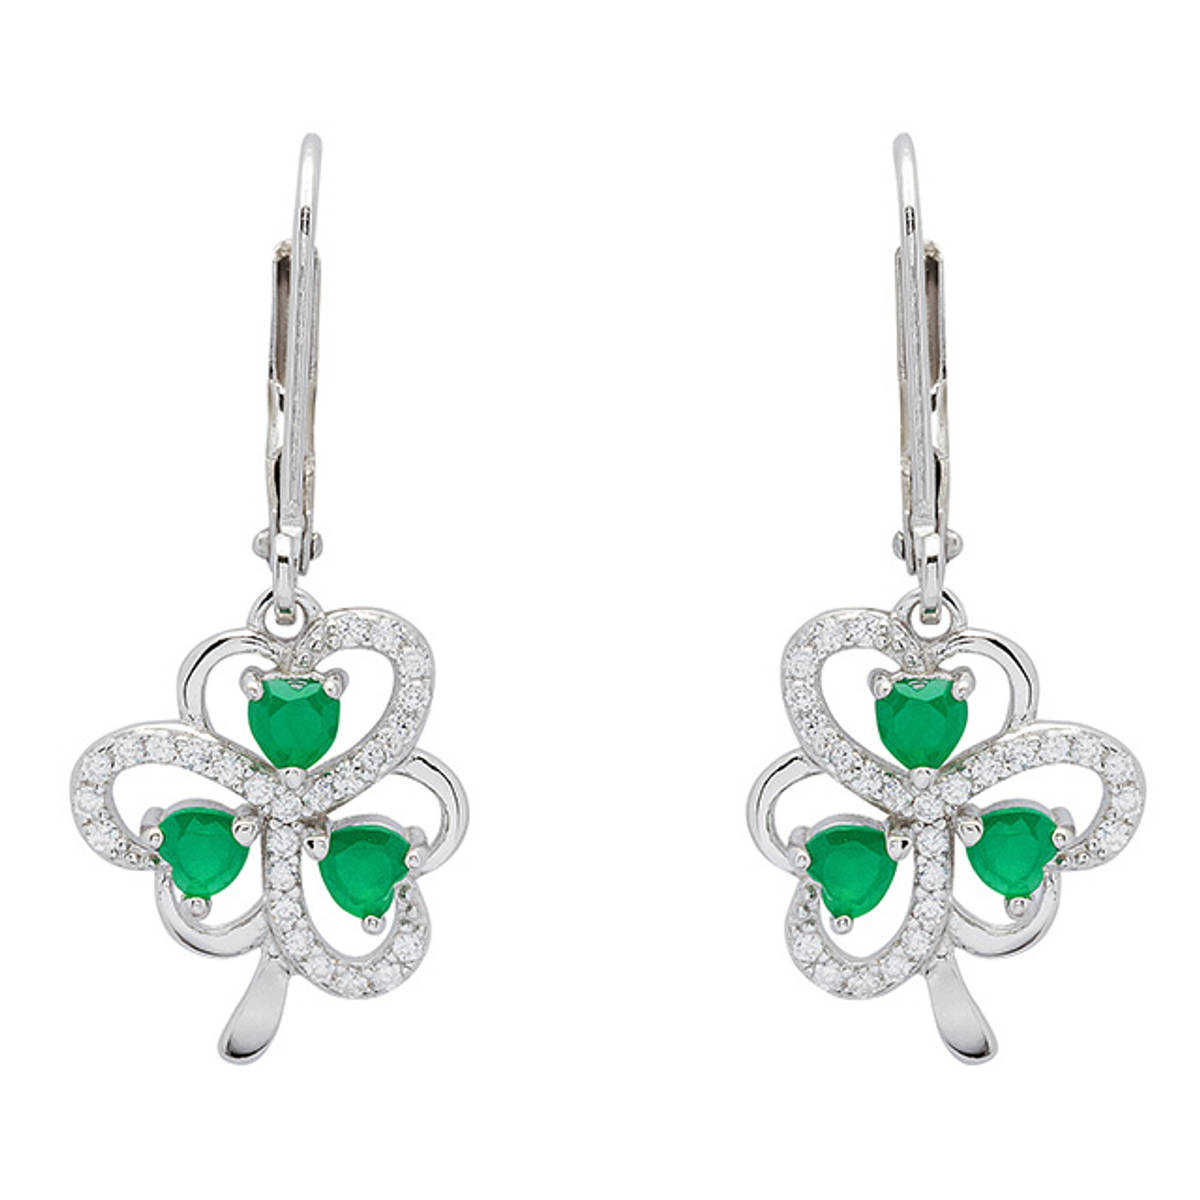 Sterling silver shamrock earrings with heart-shaped green agate and cubic zirconia.   Size: 15mm